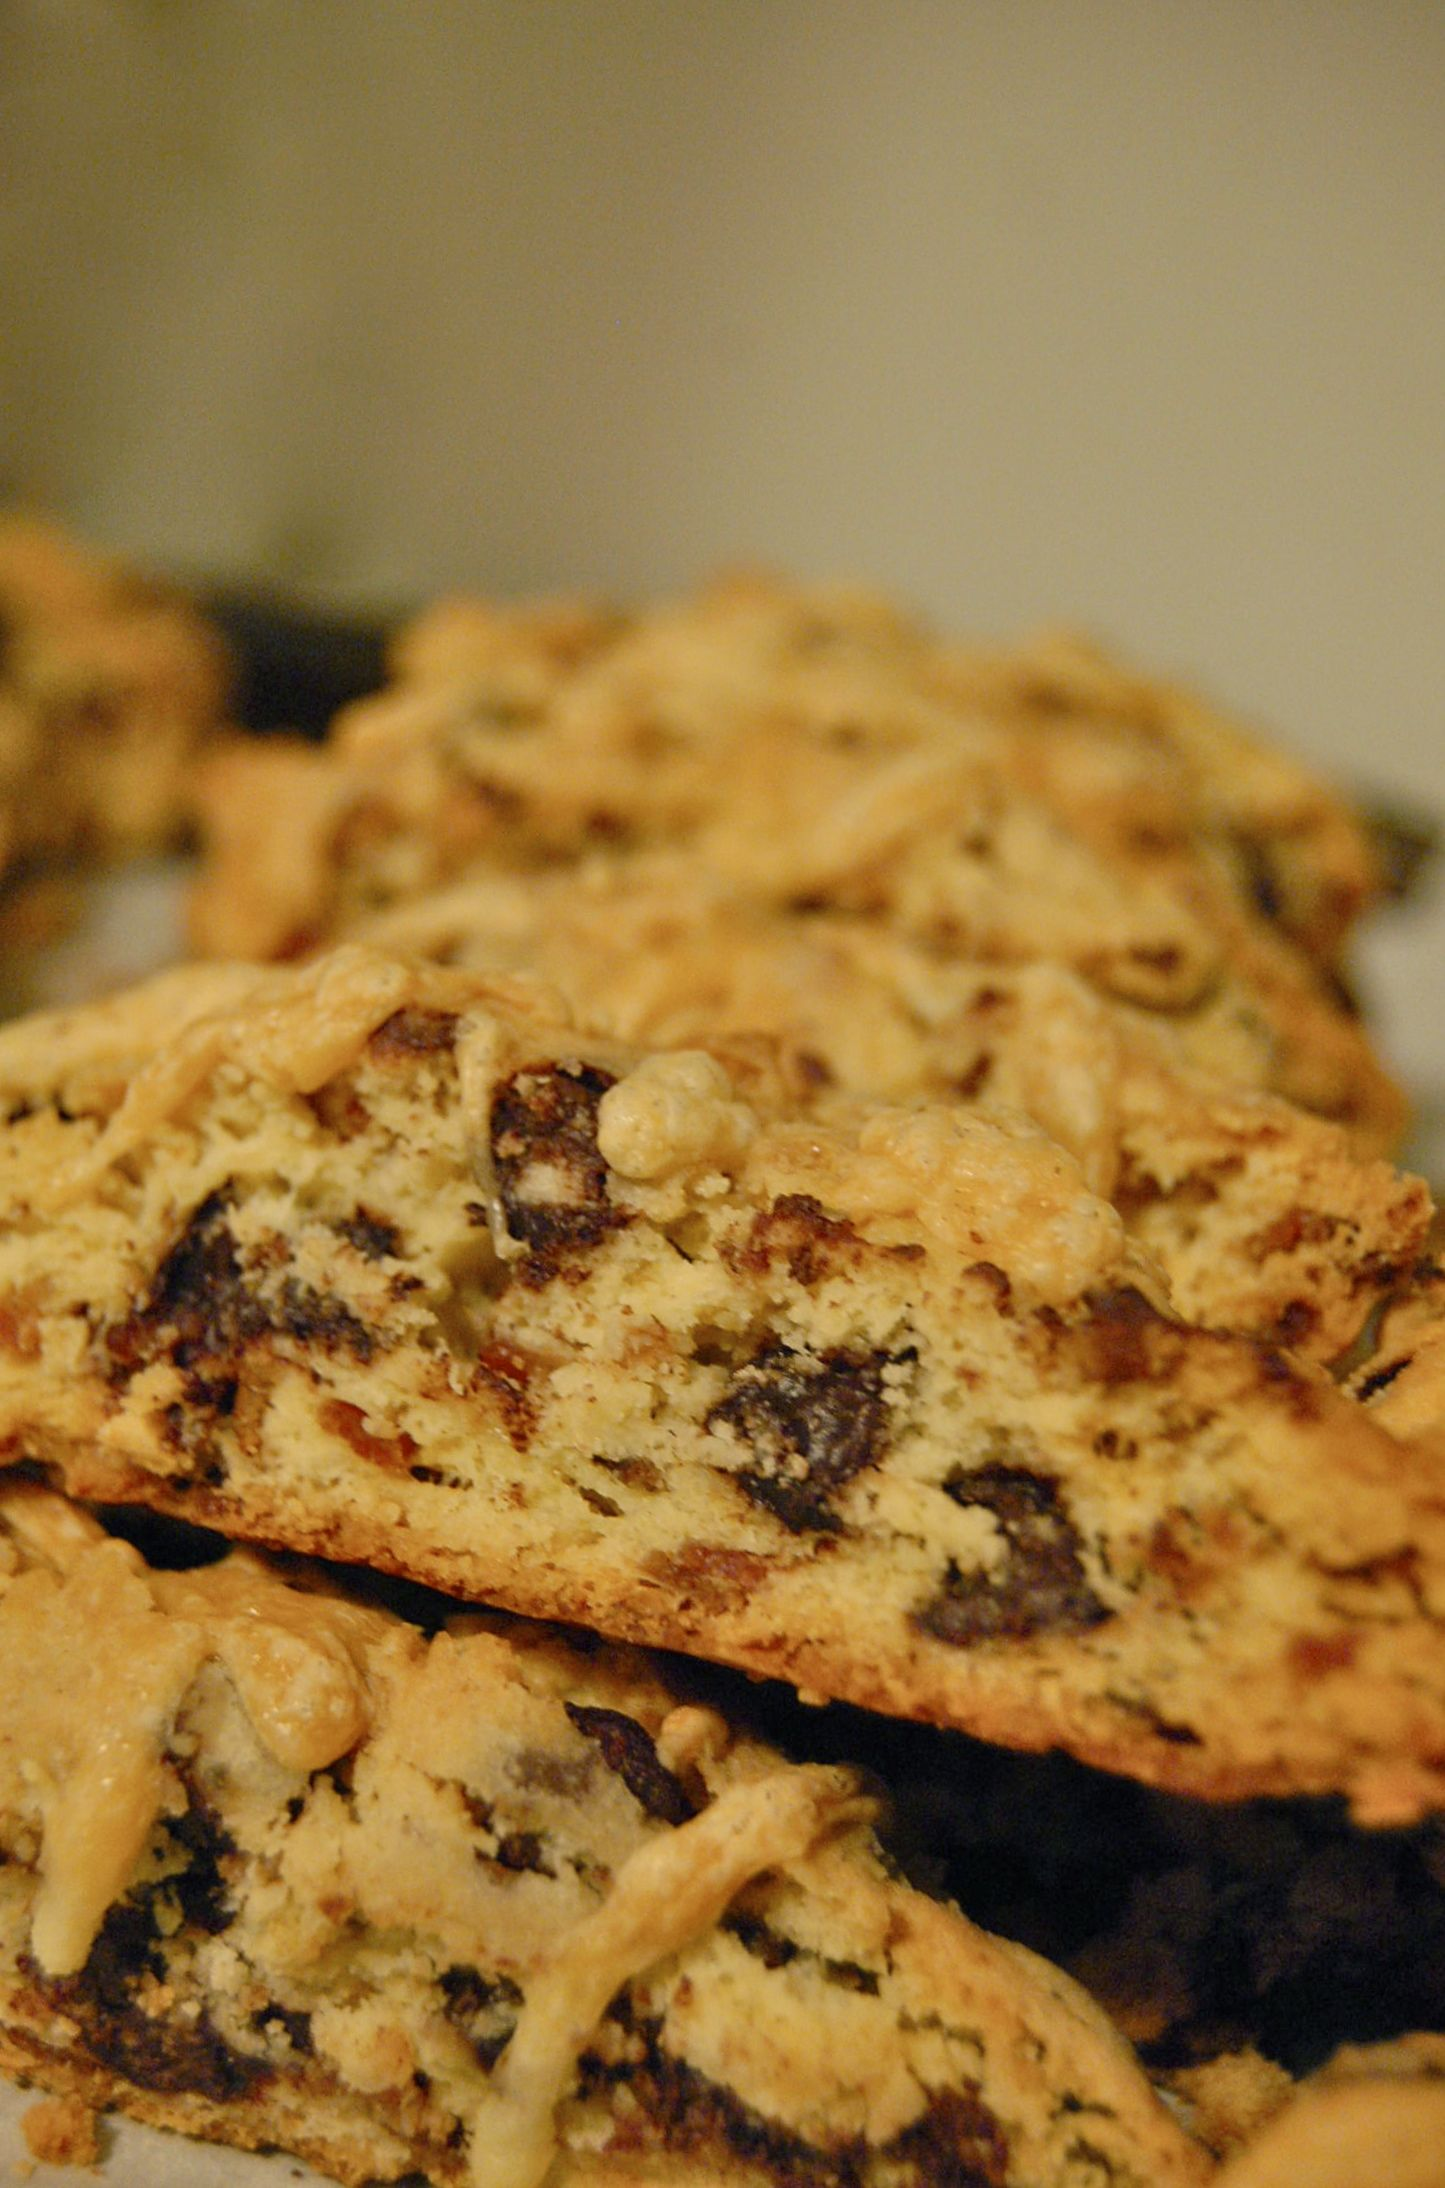 Whiskey Bacon » Blog Archive Bacon Chocolate Cheese Biscotti Recipe ...